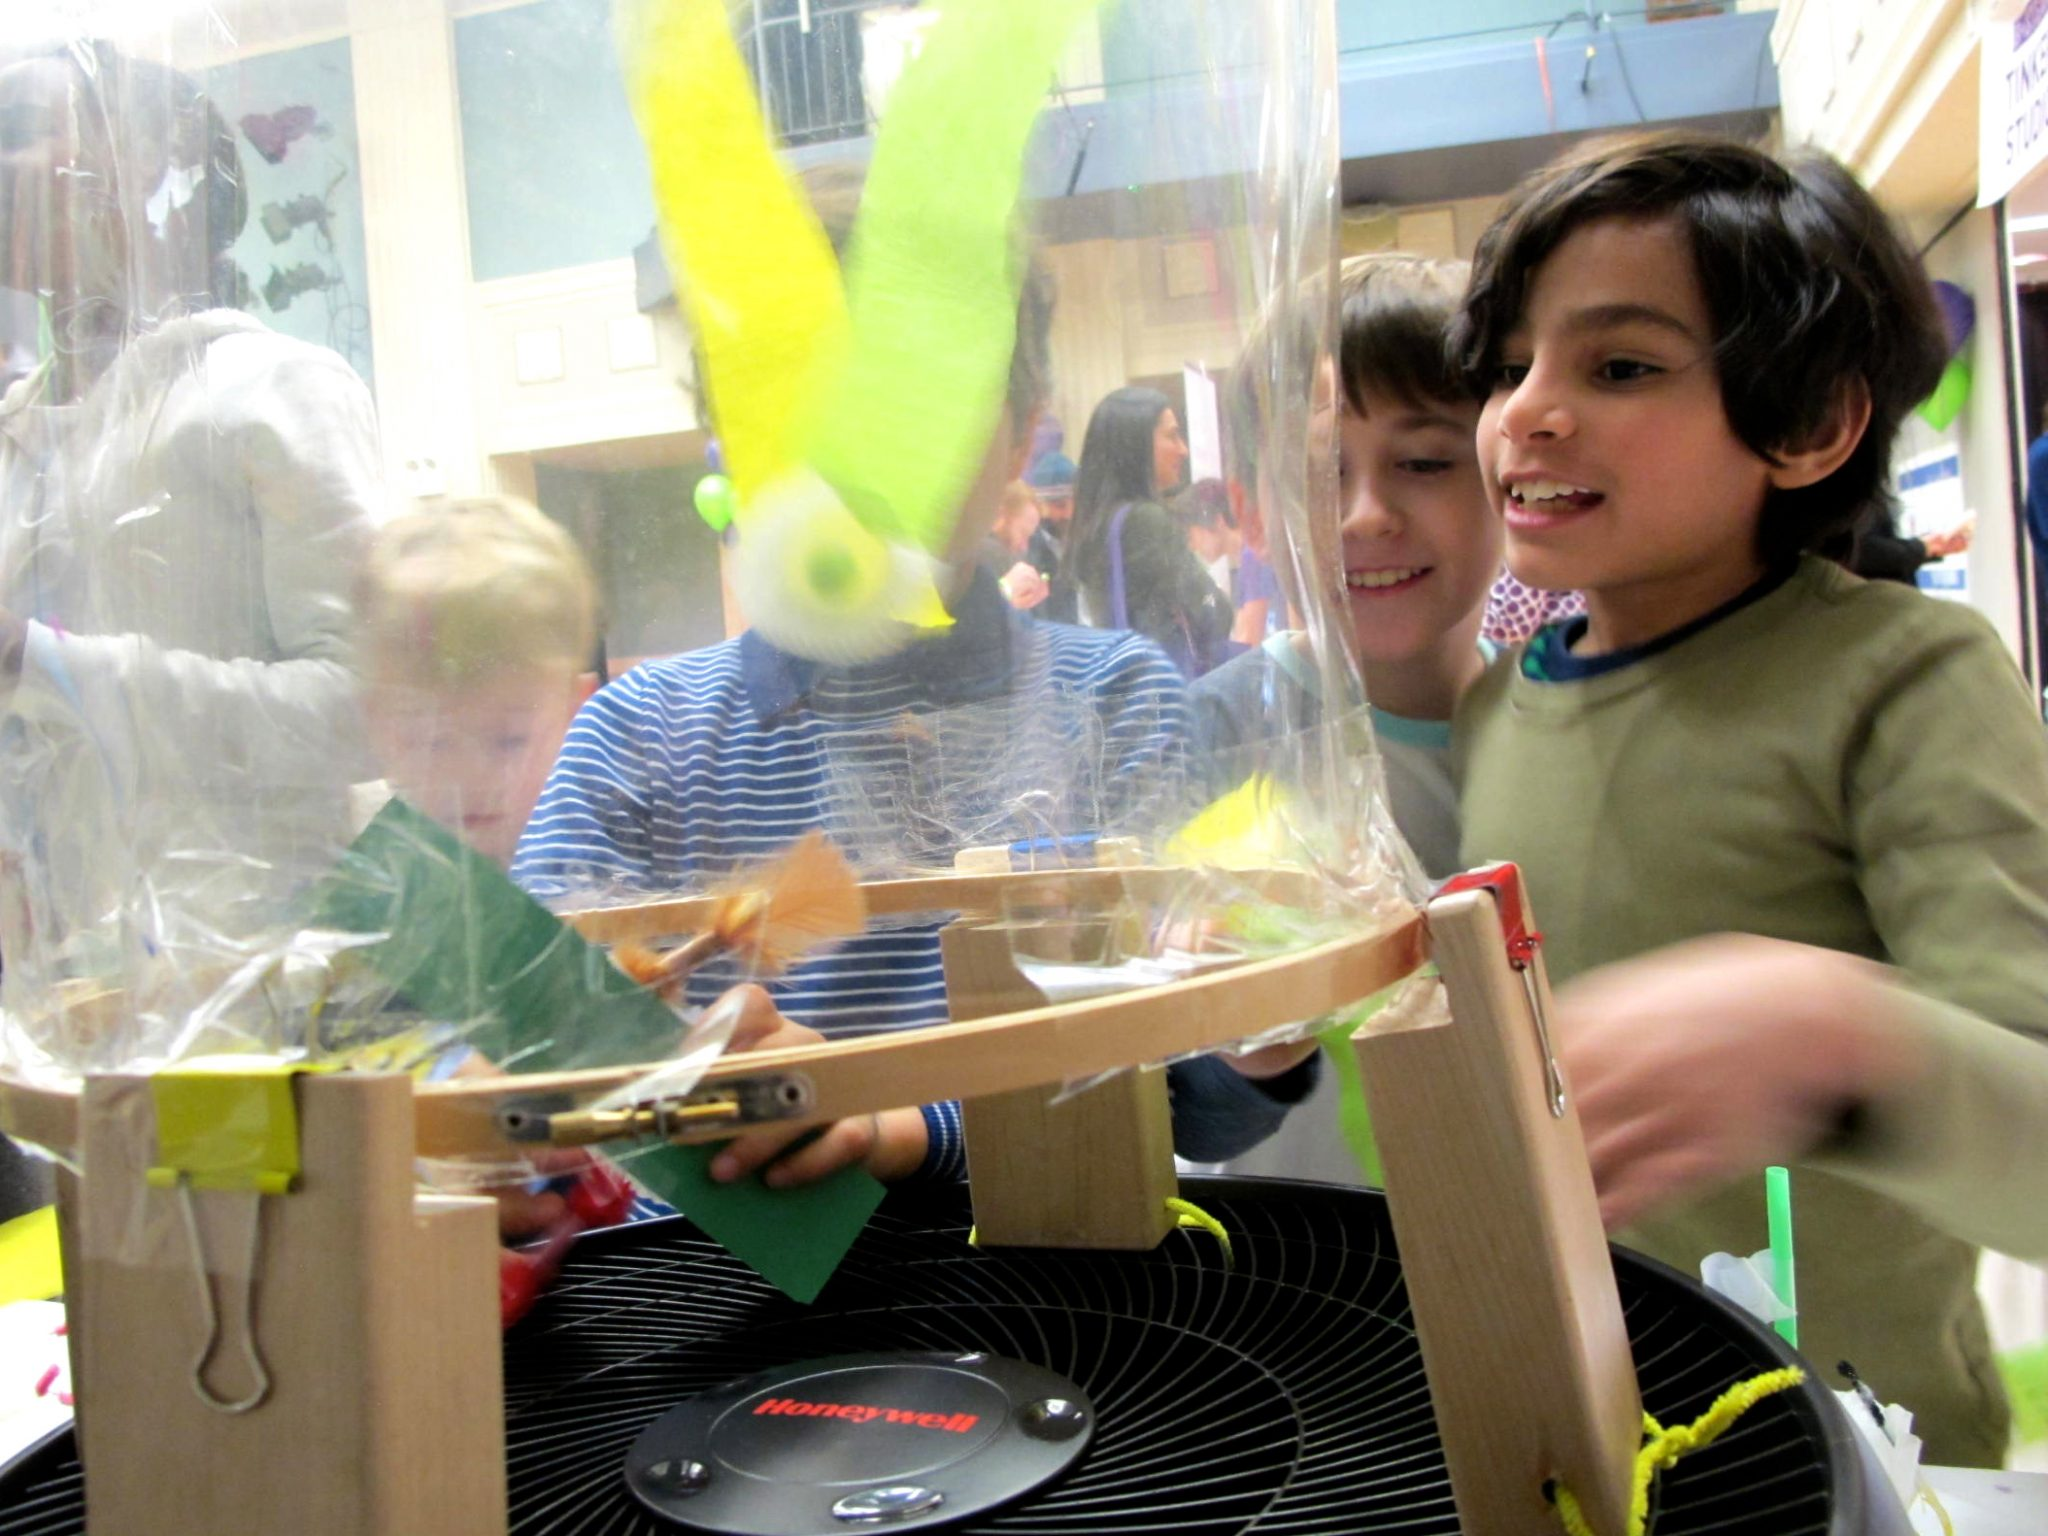 Kids Engineer! Wind-Powered Inventions at the Wind Tube Challenge — B+STEAM, The Brearley School, New York City